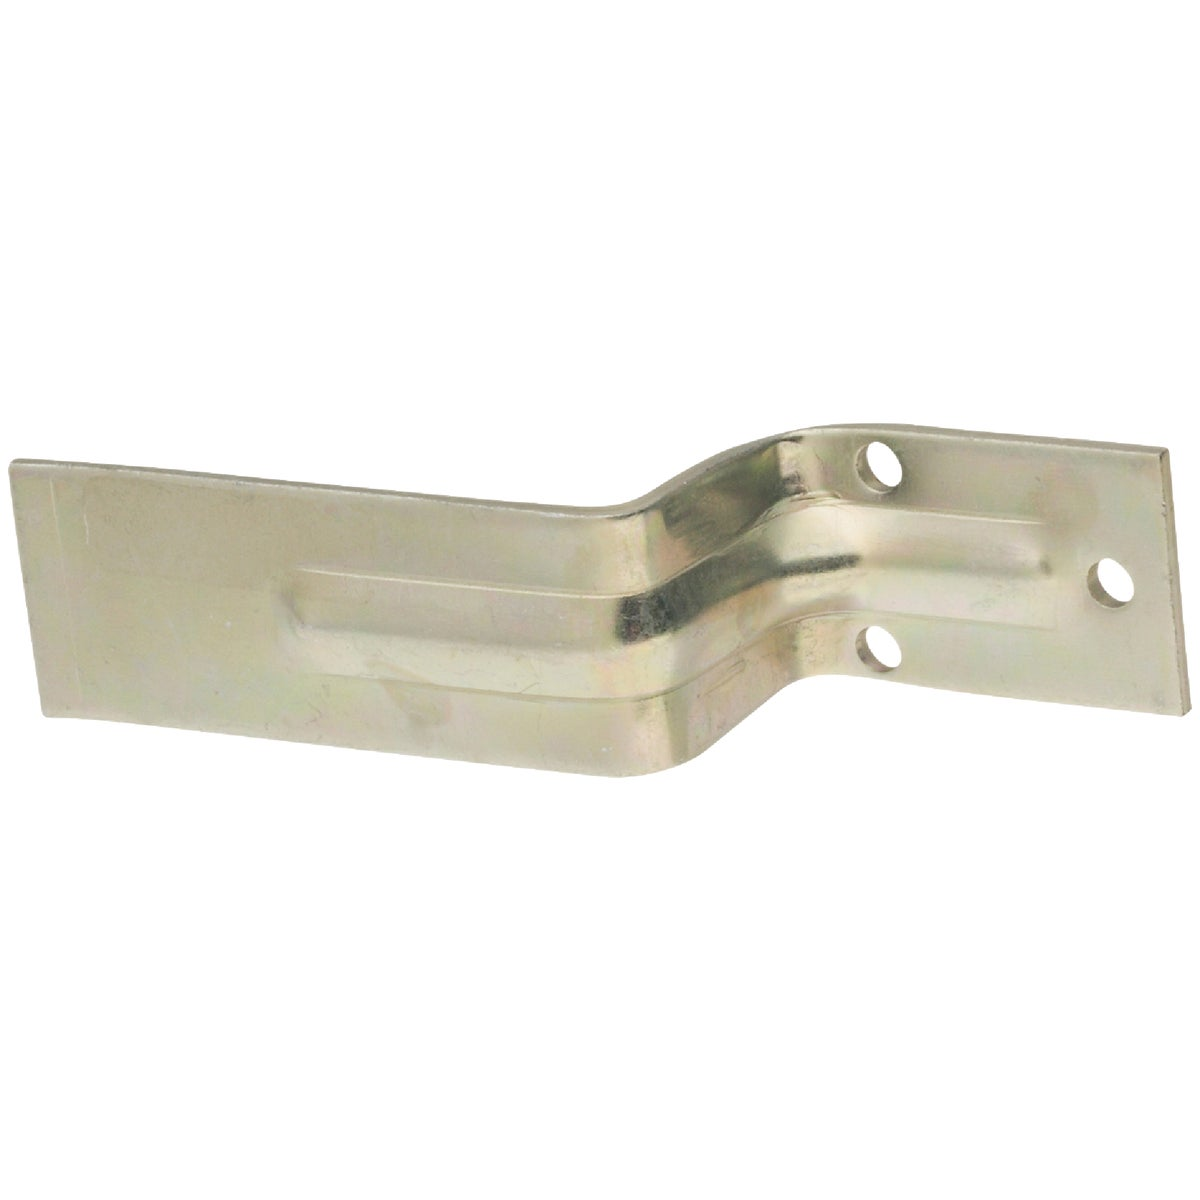 ZINC OPEN BAR HOLDER - N235309 by National Mfg Co